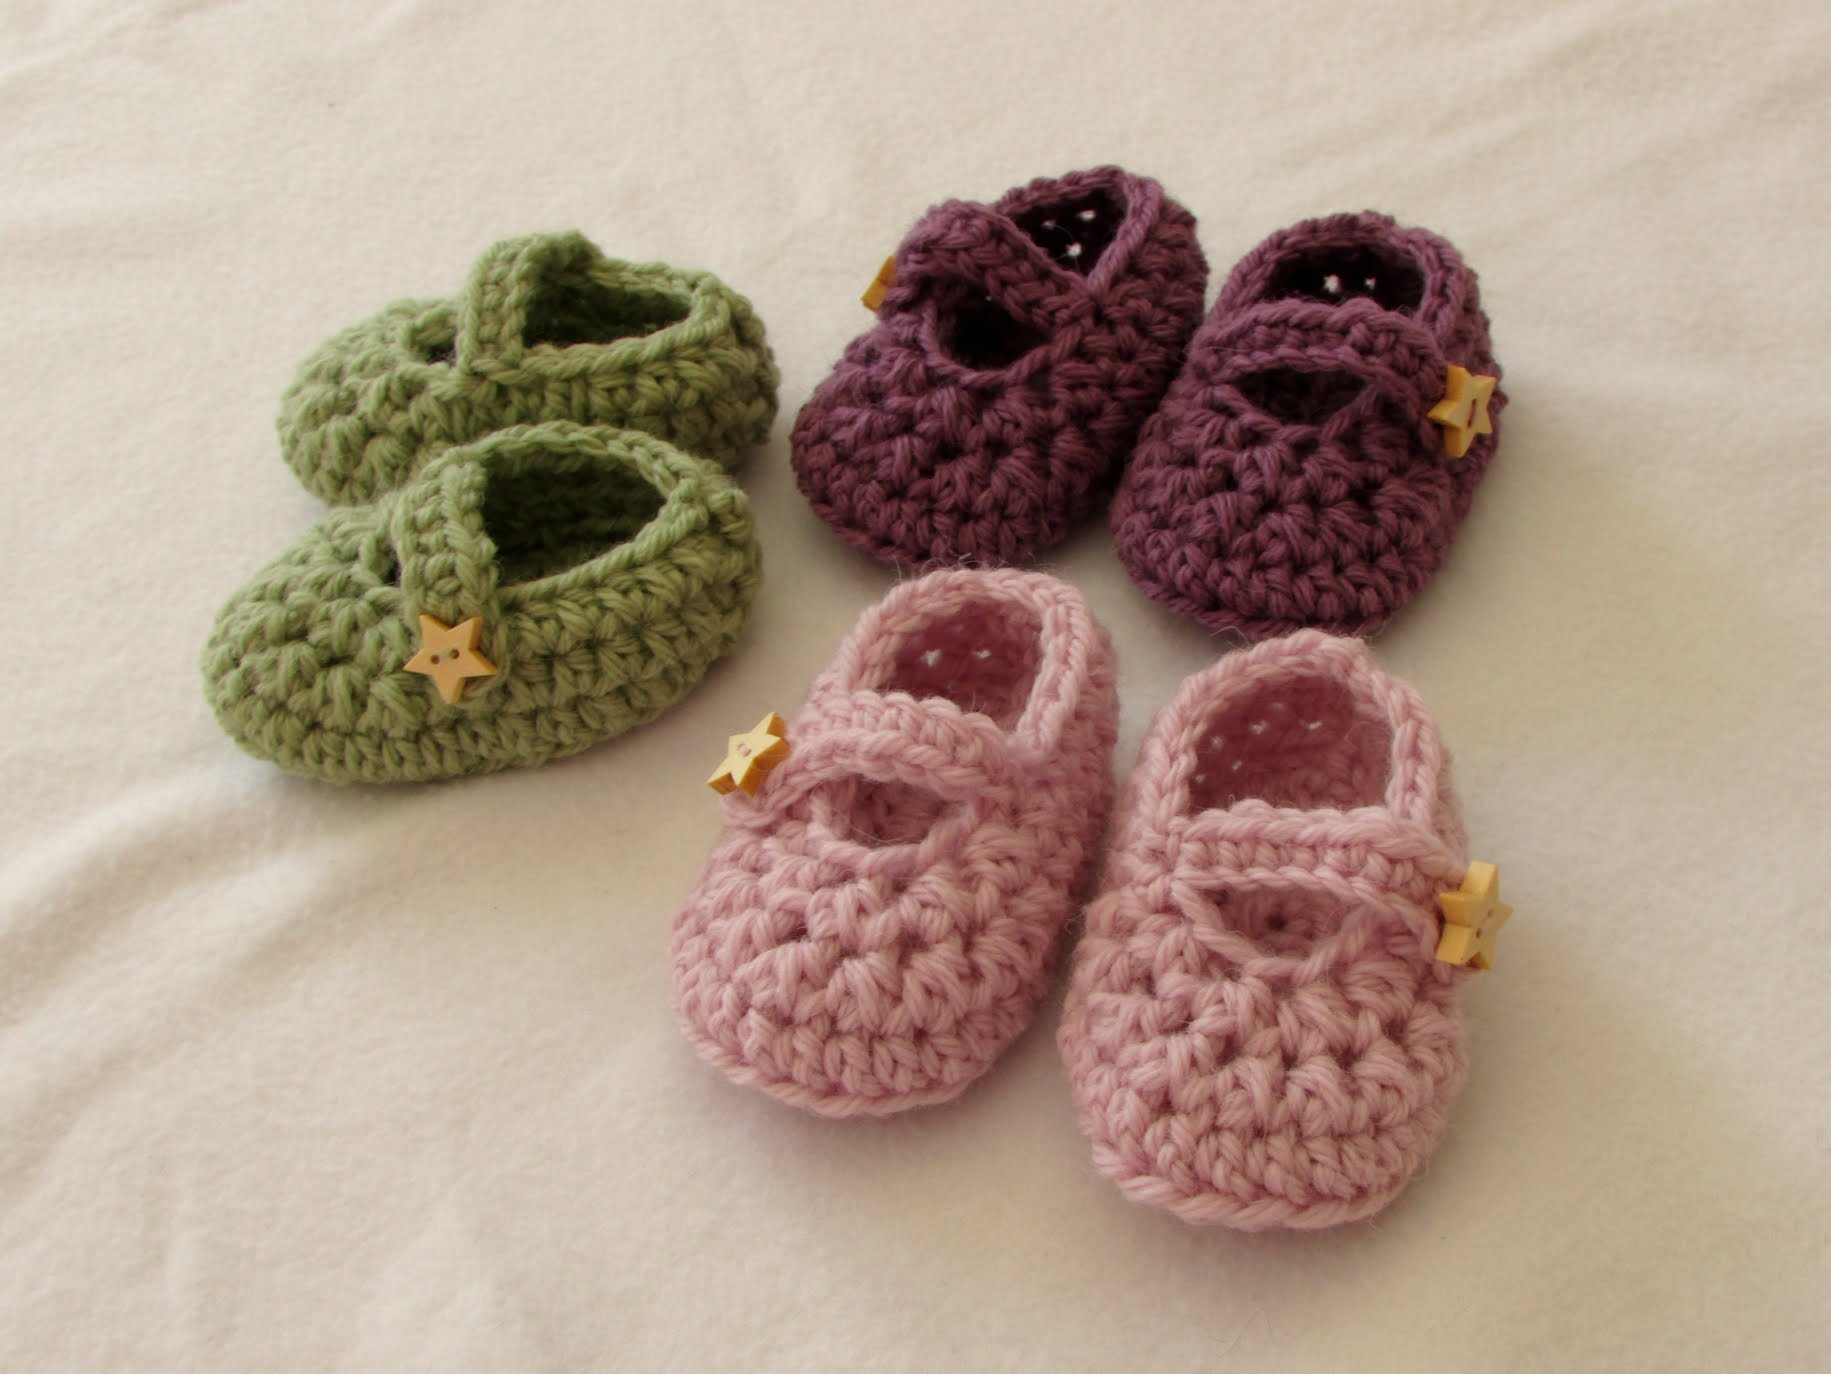 How To Crochet Easy how to crochet easy baby mary jane shoes - booties / slippers for fsxvszj